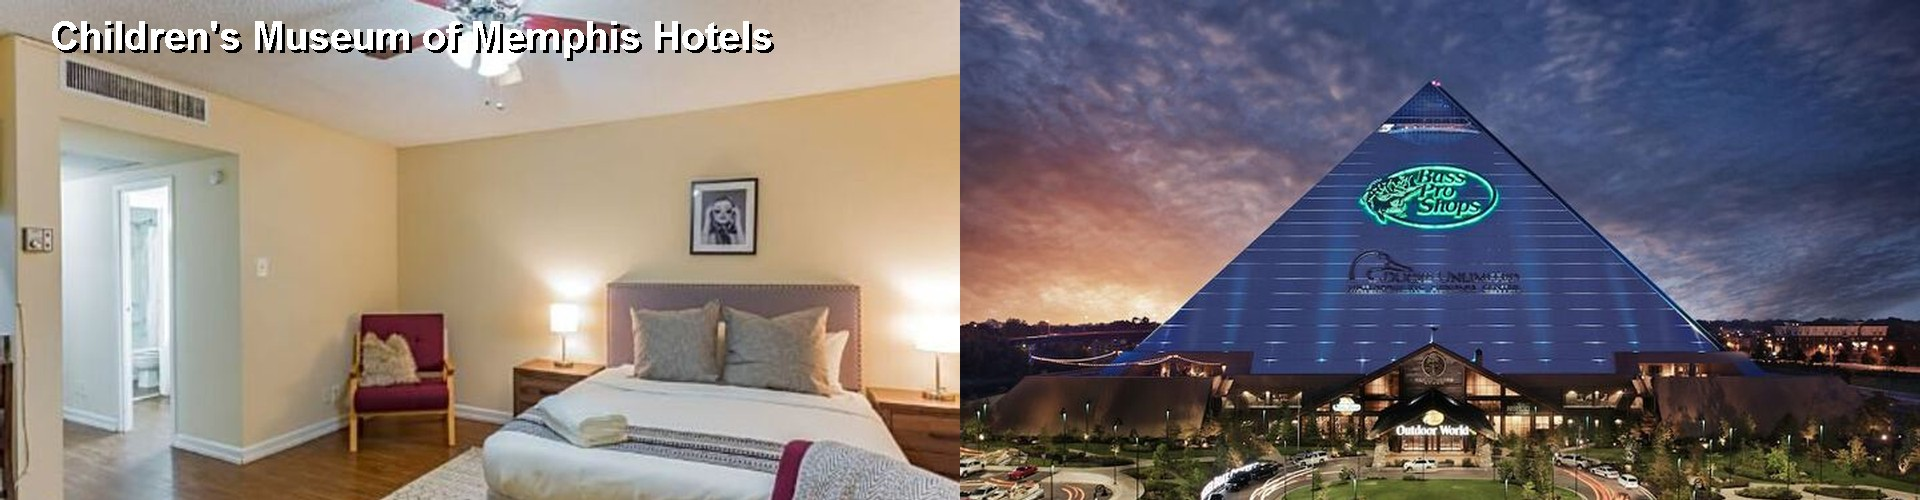 5 Best Hotels near Children's Museum of Memphis